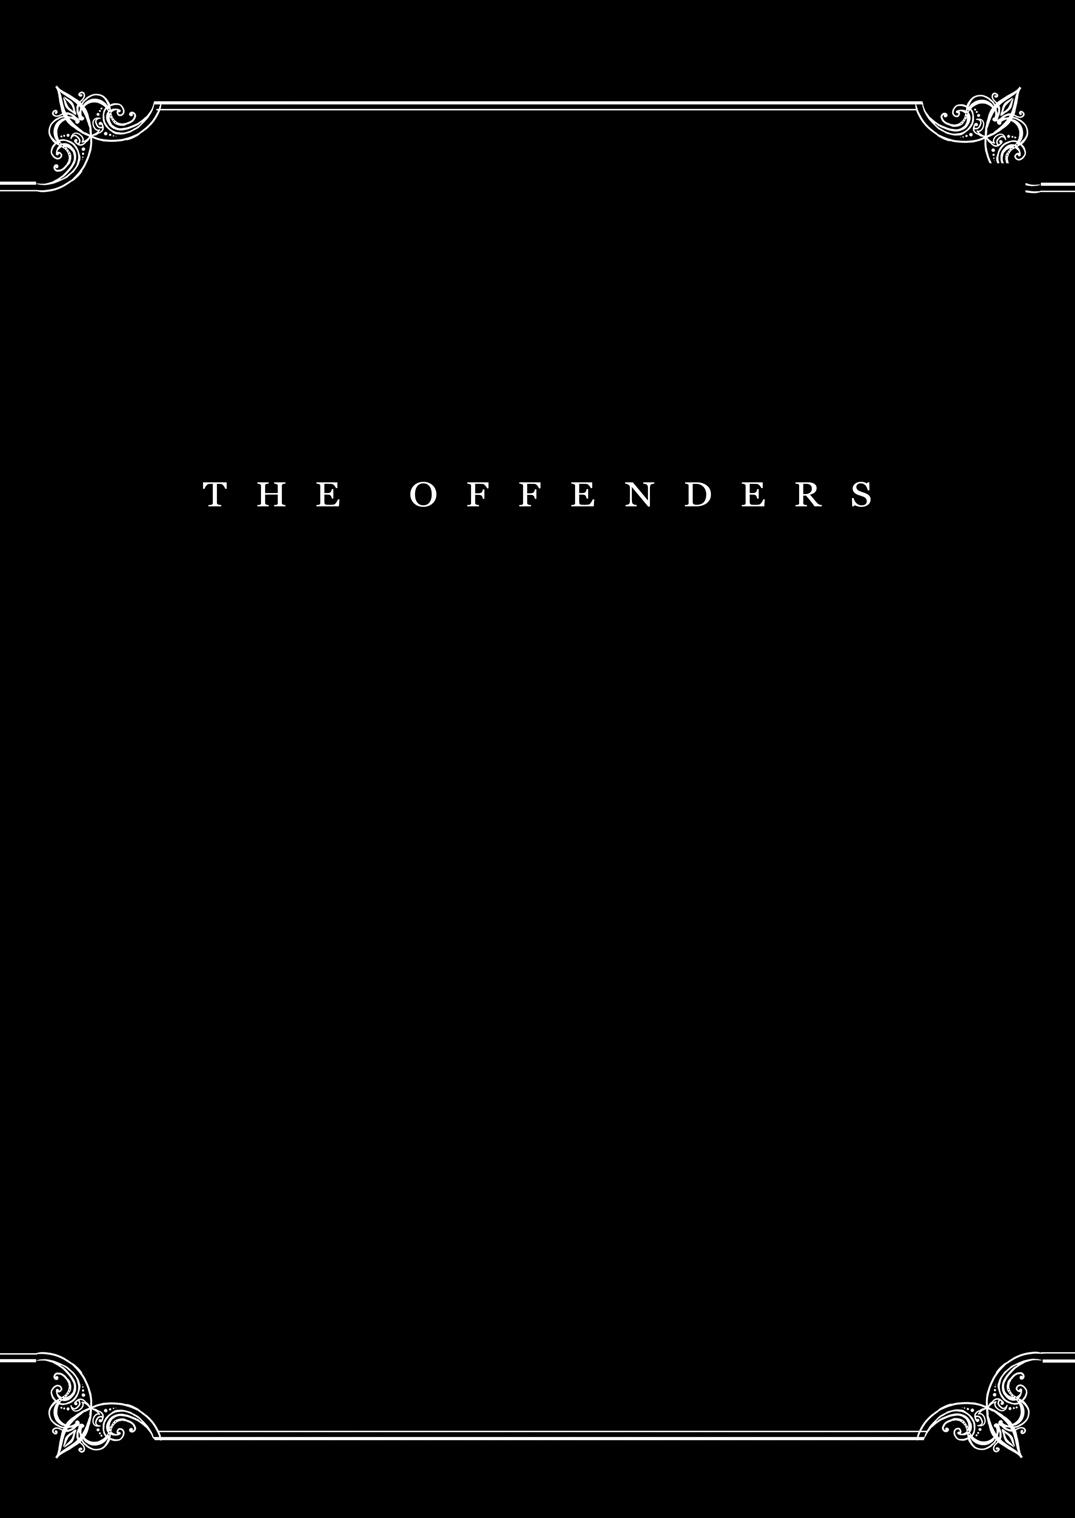 THE OFFENDERS 1